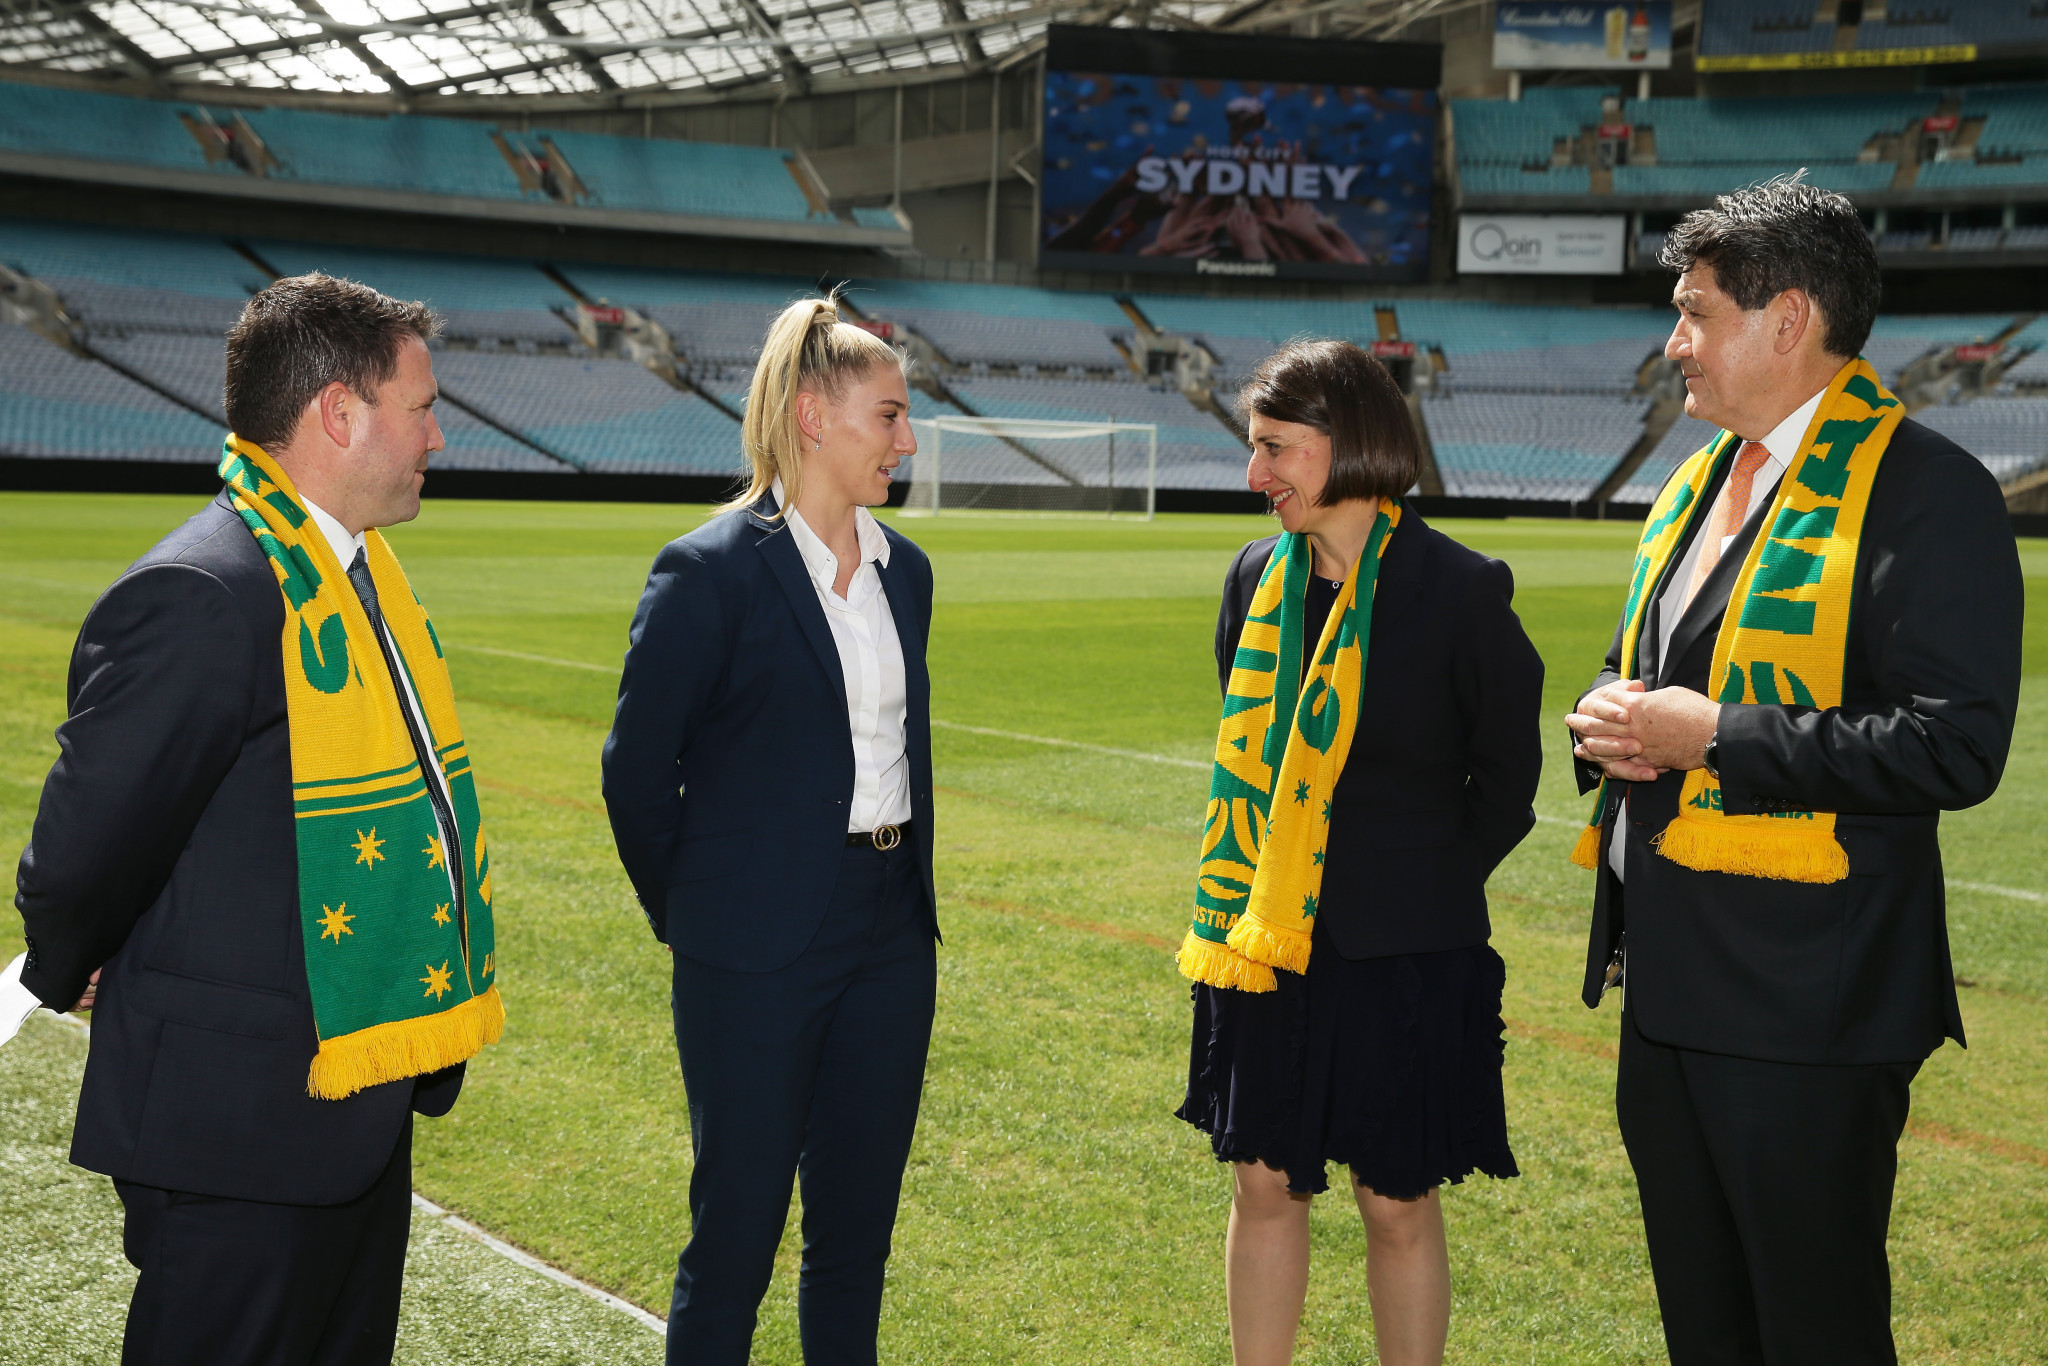 FIFA delegation to visit 2023 Women's World Cup venues in Australia and New Zealand